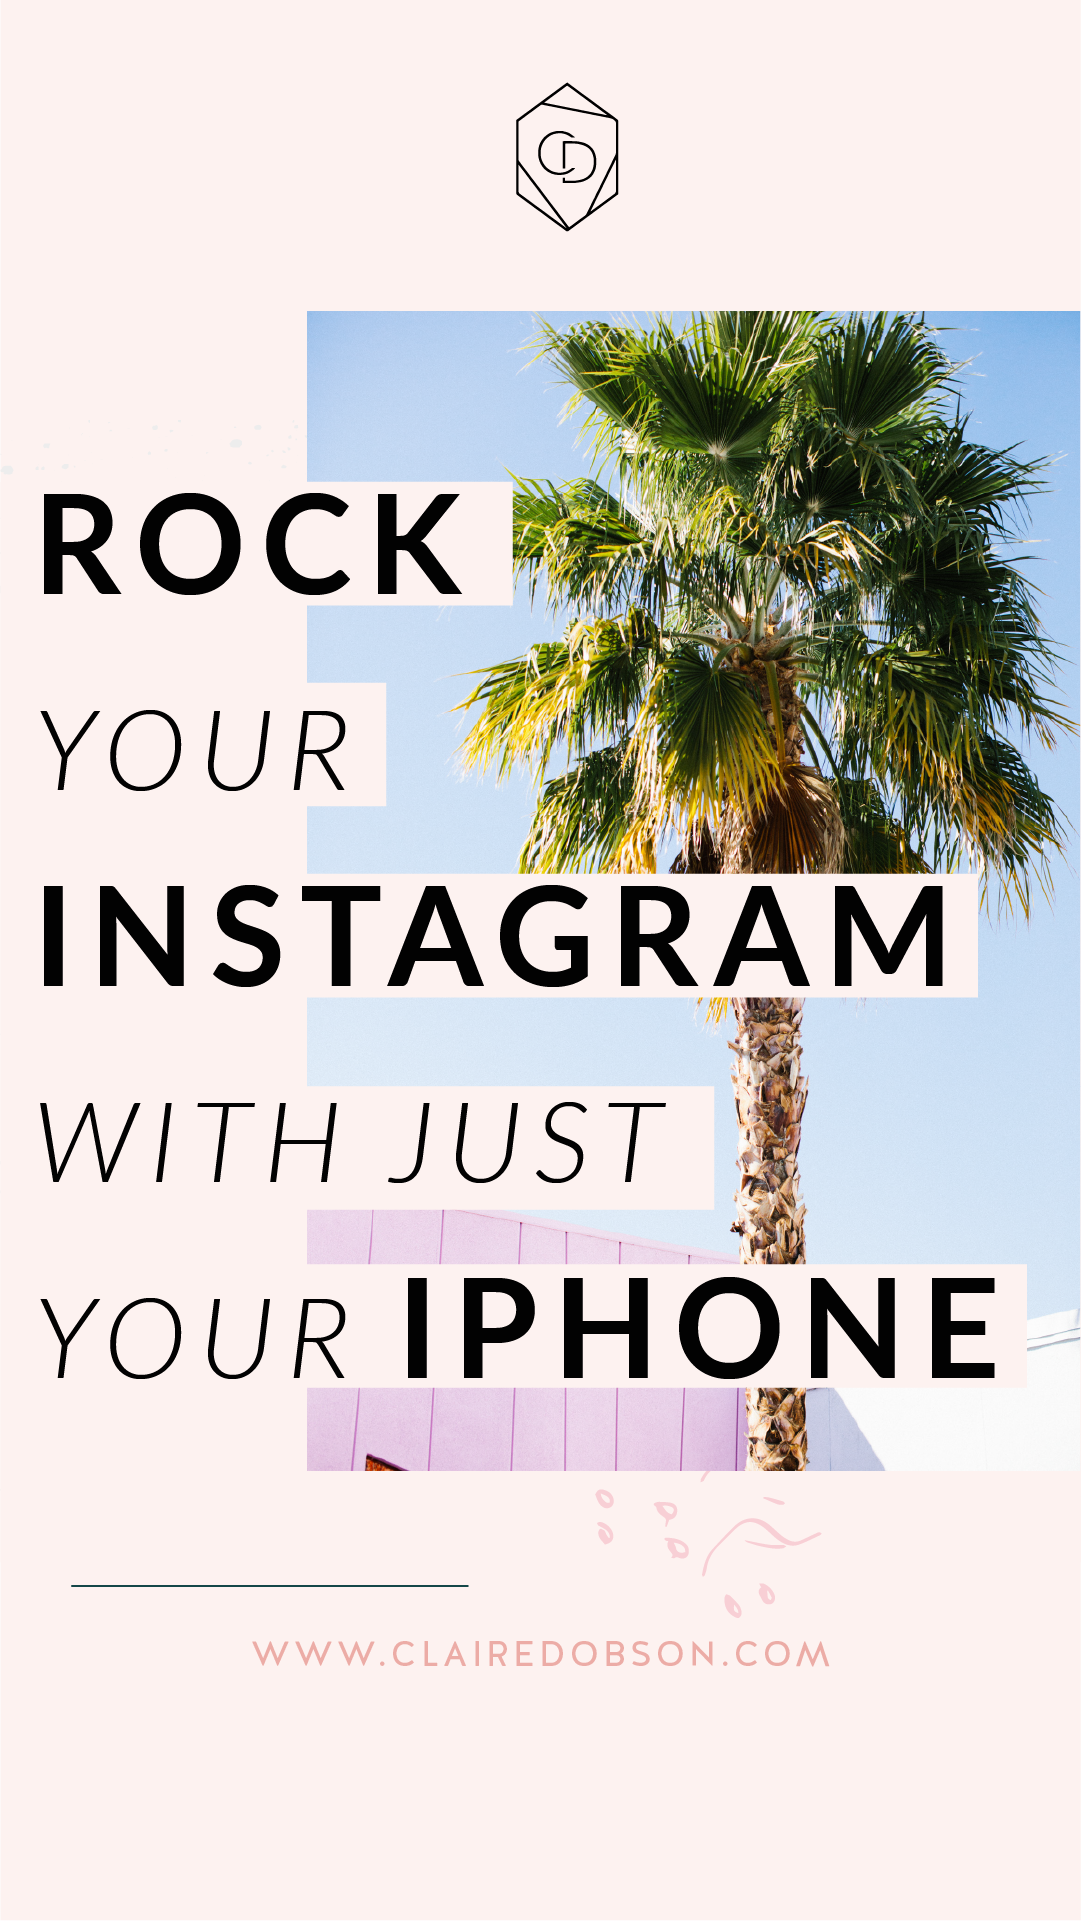 4 Quick Tips for Shooting Instagram Photos with Your iPhone